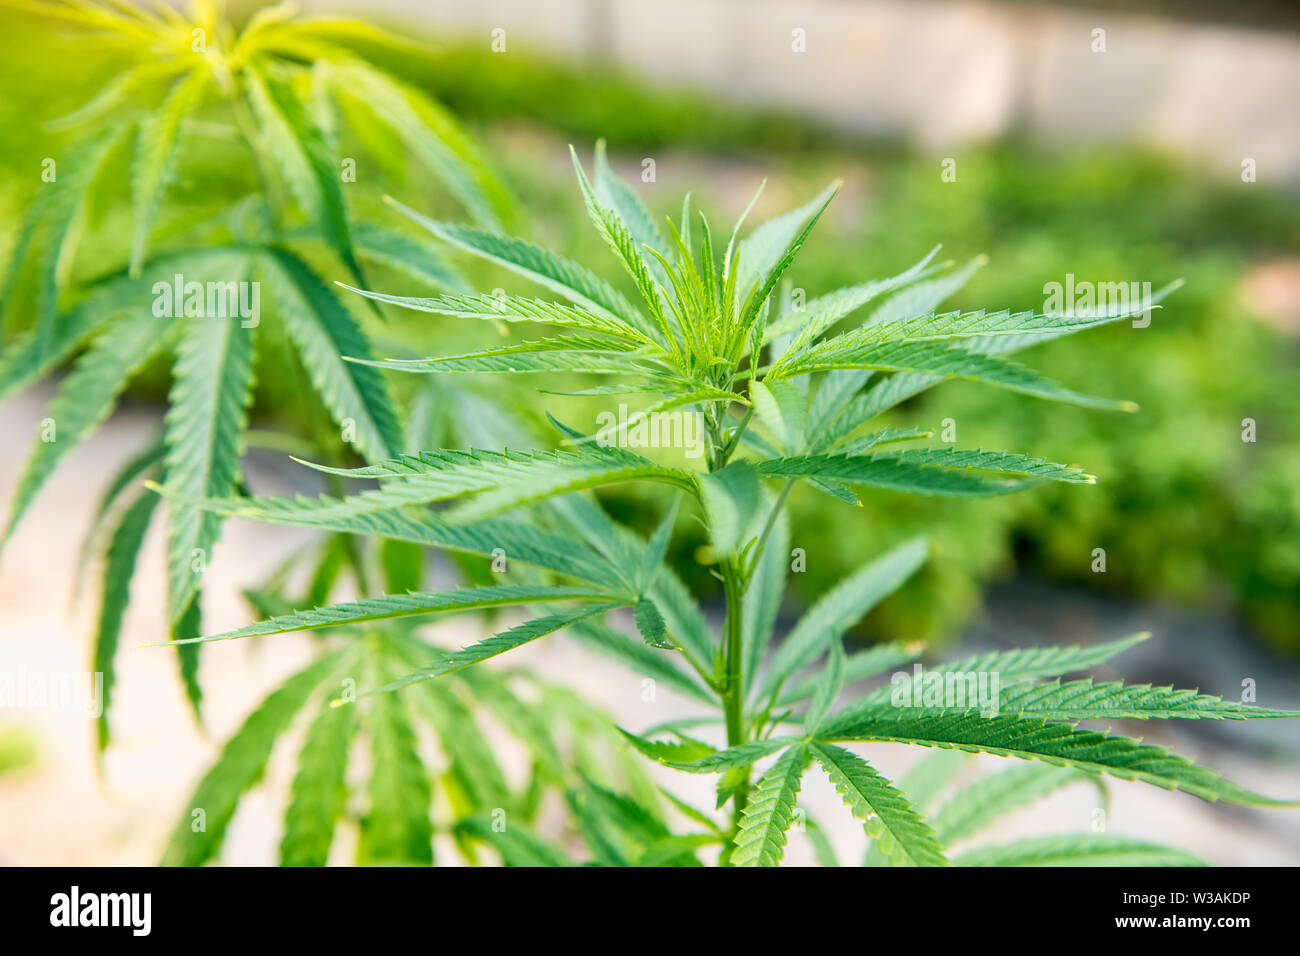 Close up on the leaves of a cannabis plant, Cannabis sativa, growing outdoors which yields popular recreational psychoactive drugs - Stock Image